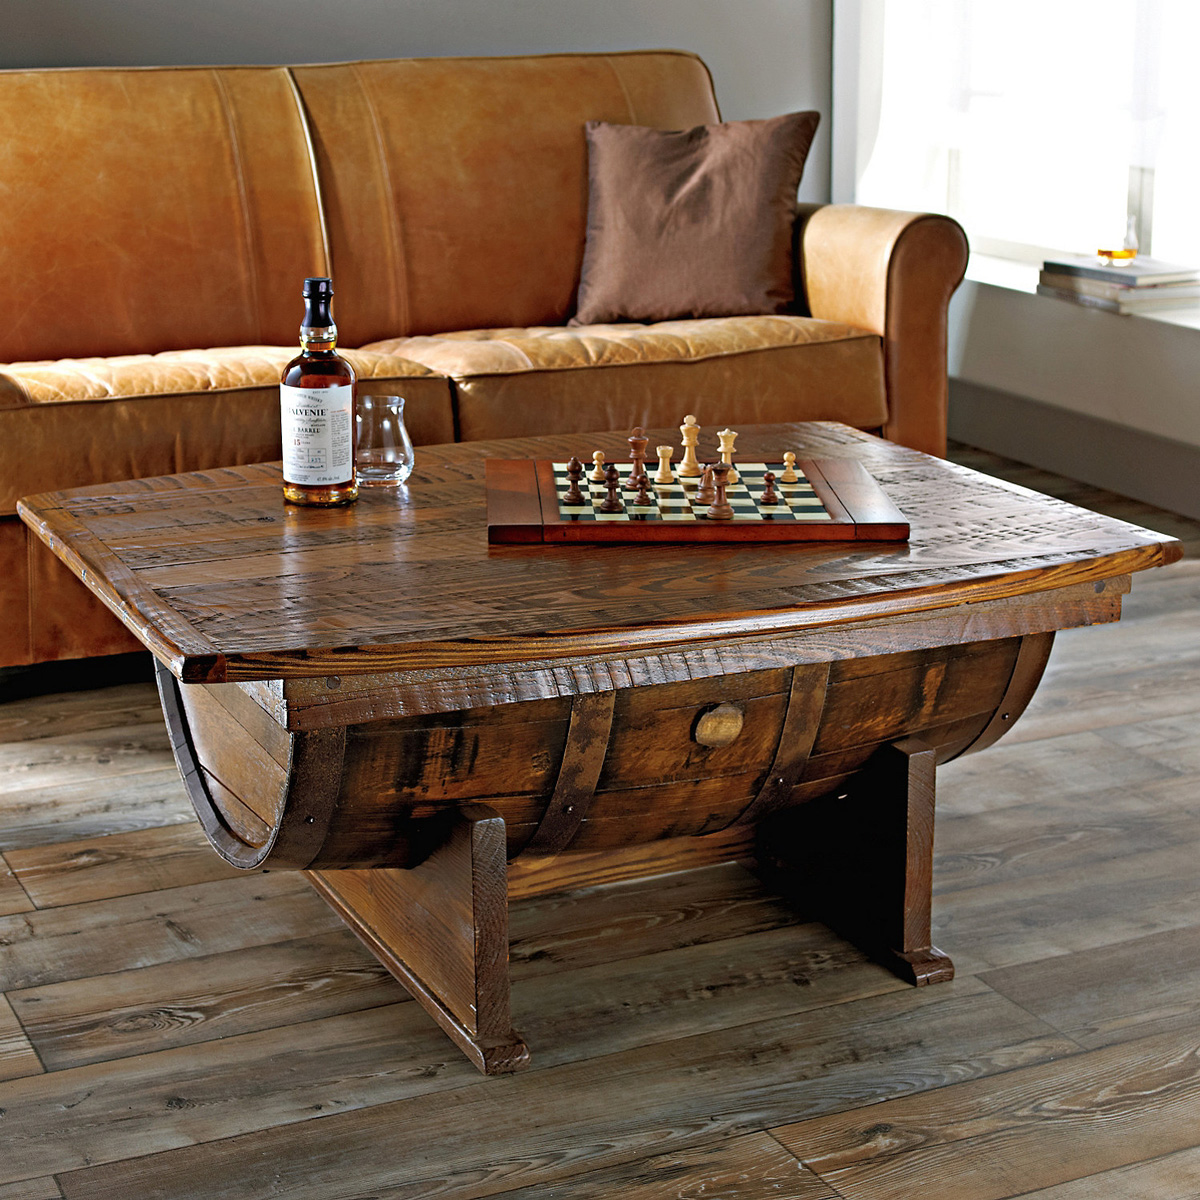 handmade vintage oak whiskey barrel coffee table accent small rectangular outdoor bedroom set expandable dining unfinished wood dresser modern pedestal industrial tall narrow